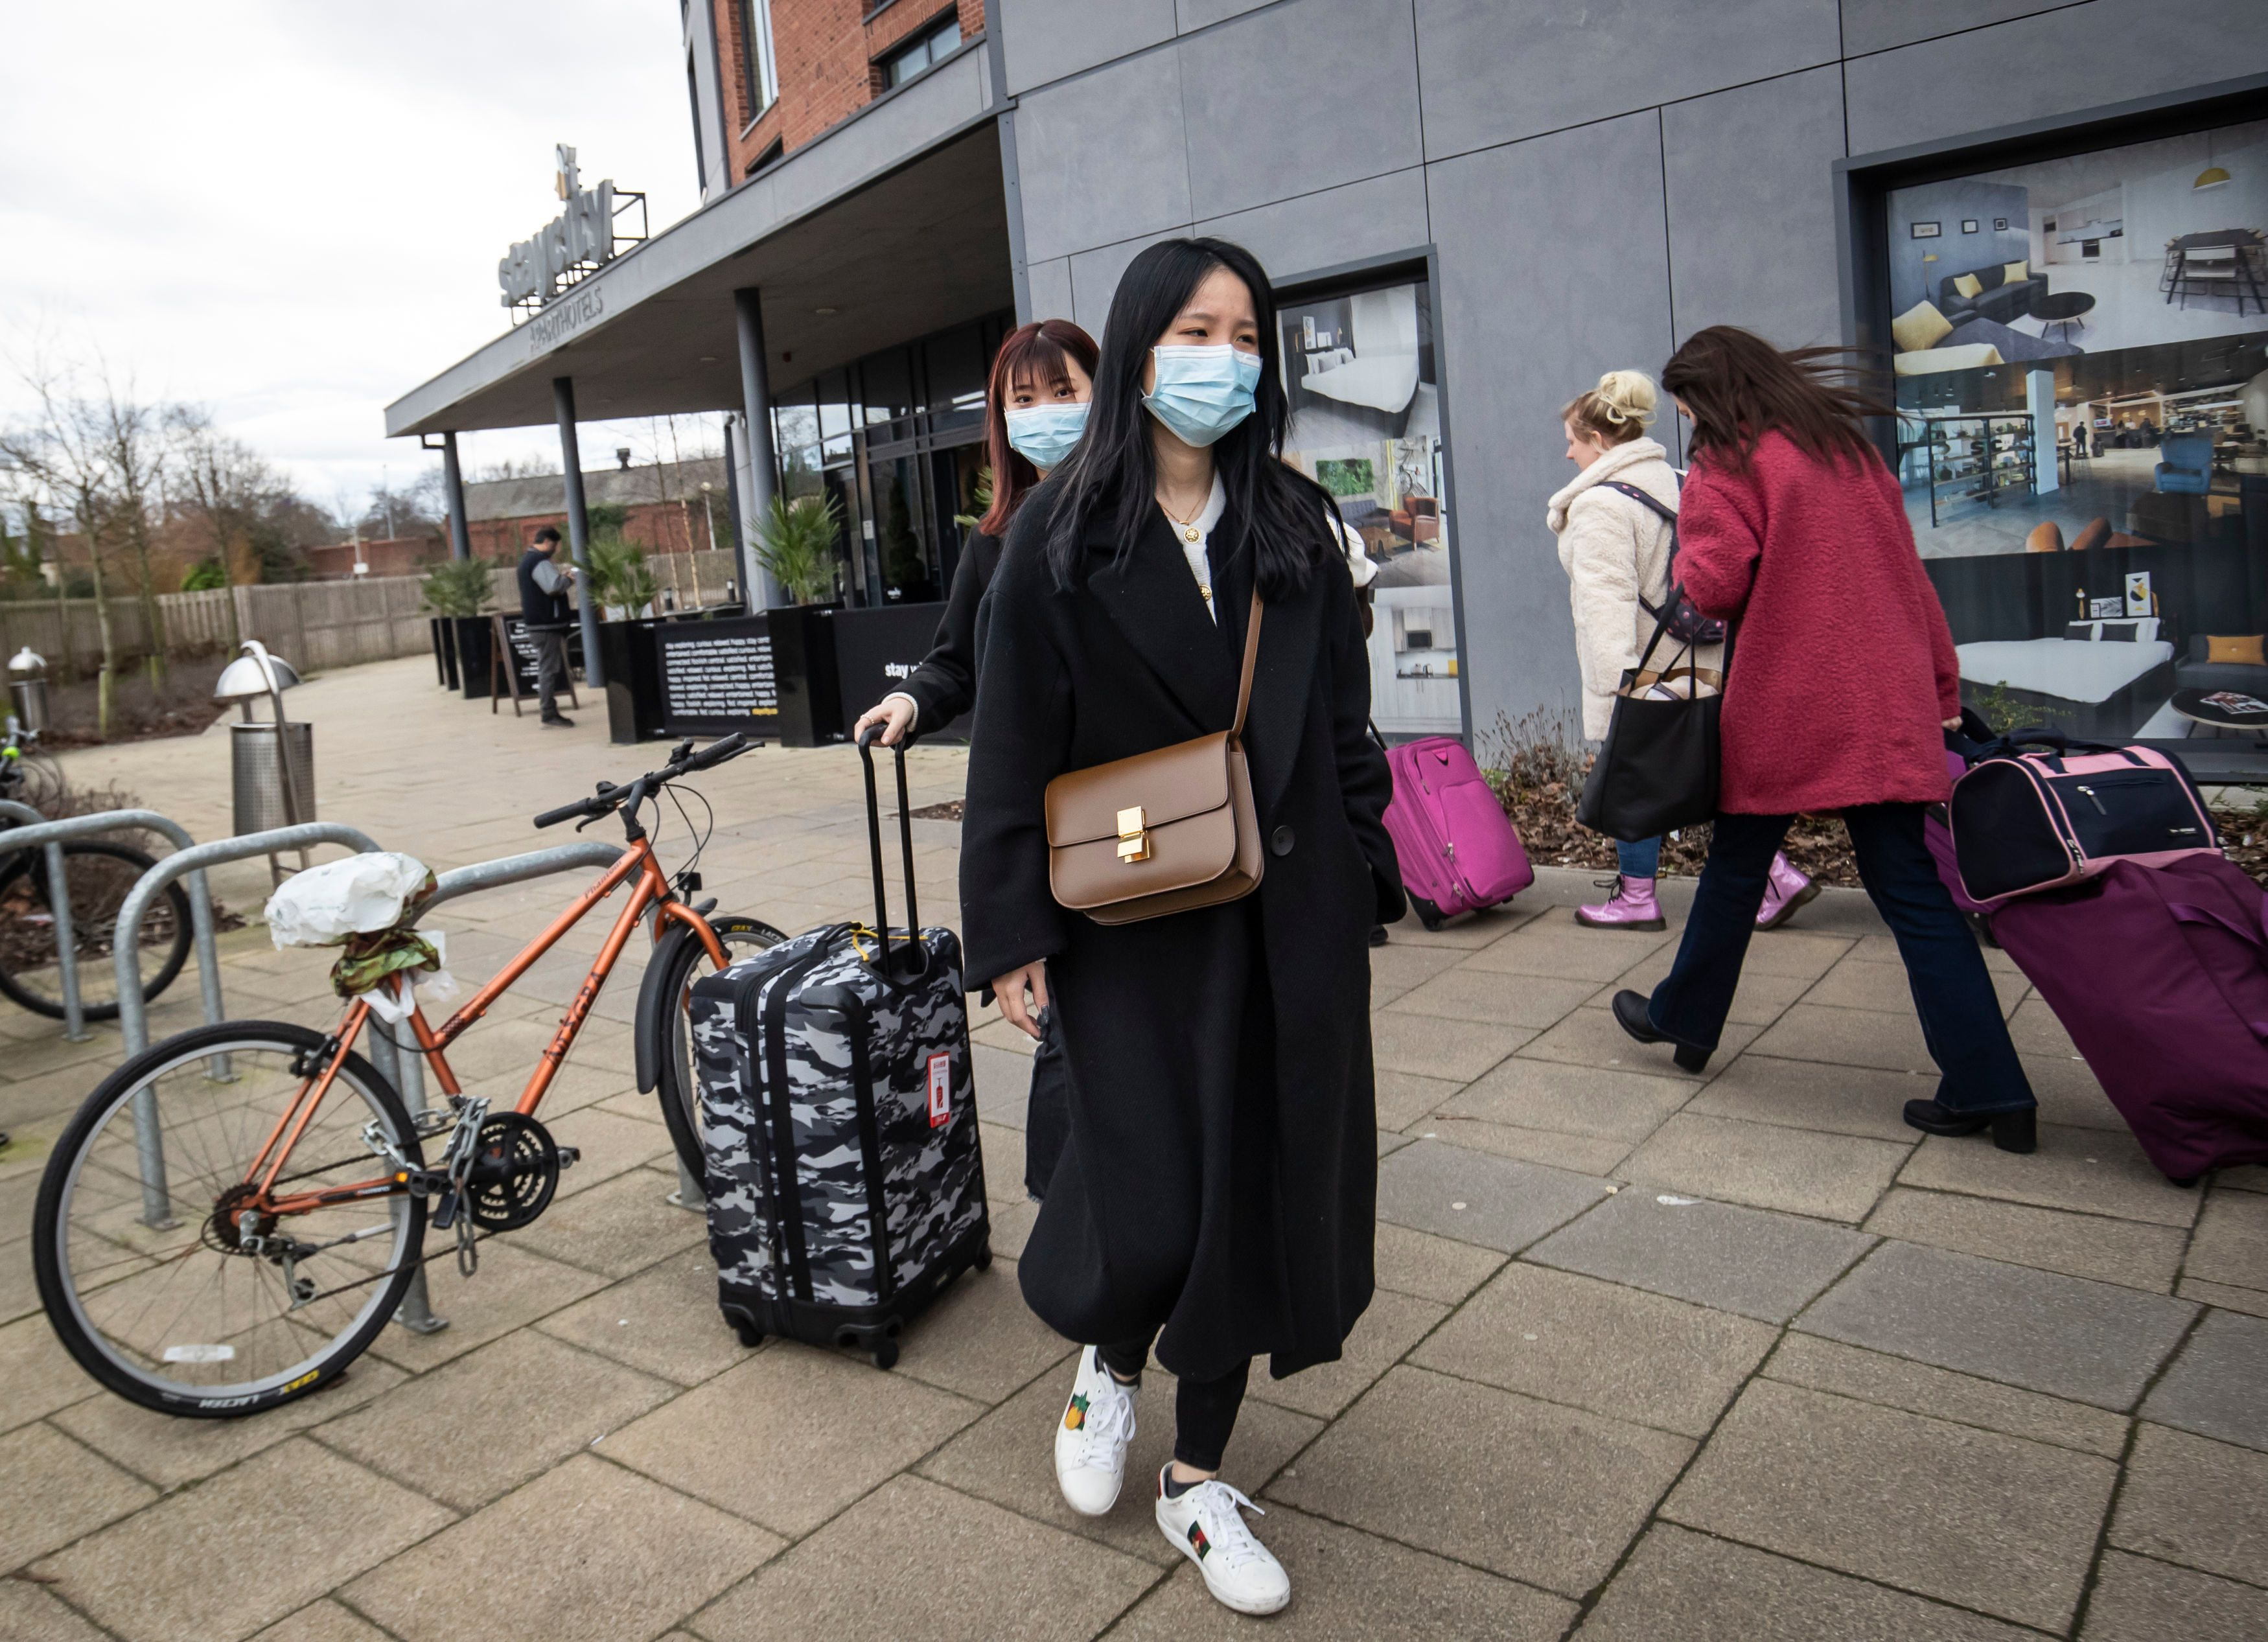 Two women wearing face masks leave the Staycity Hotel in the centre of York